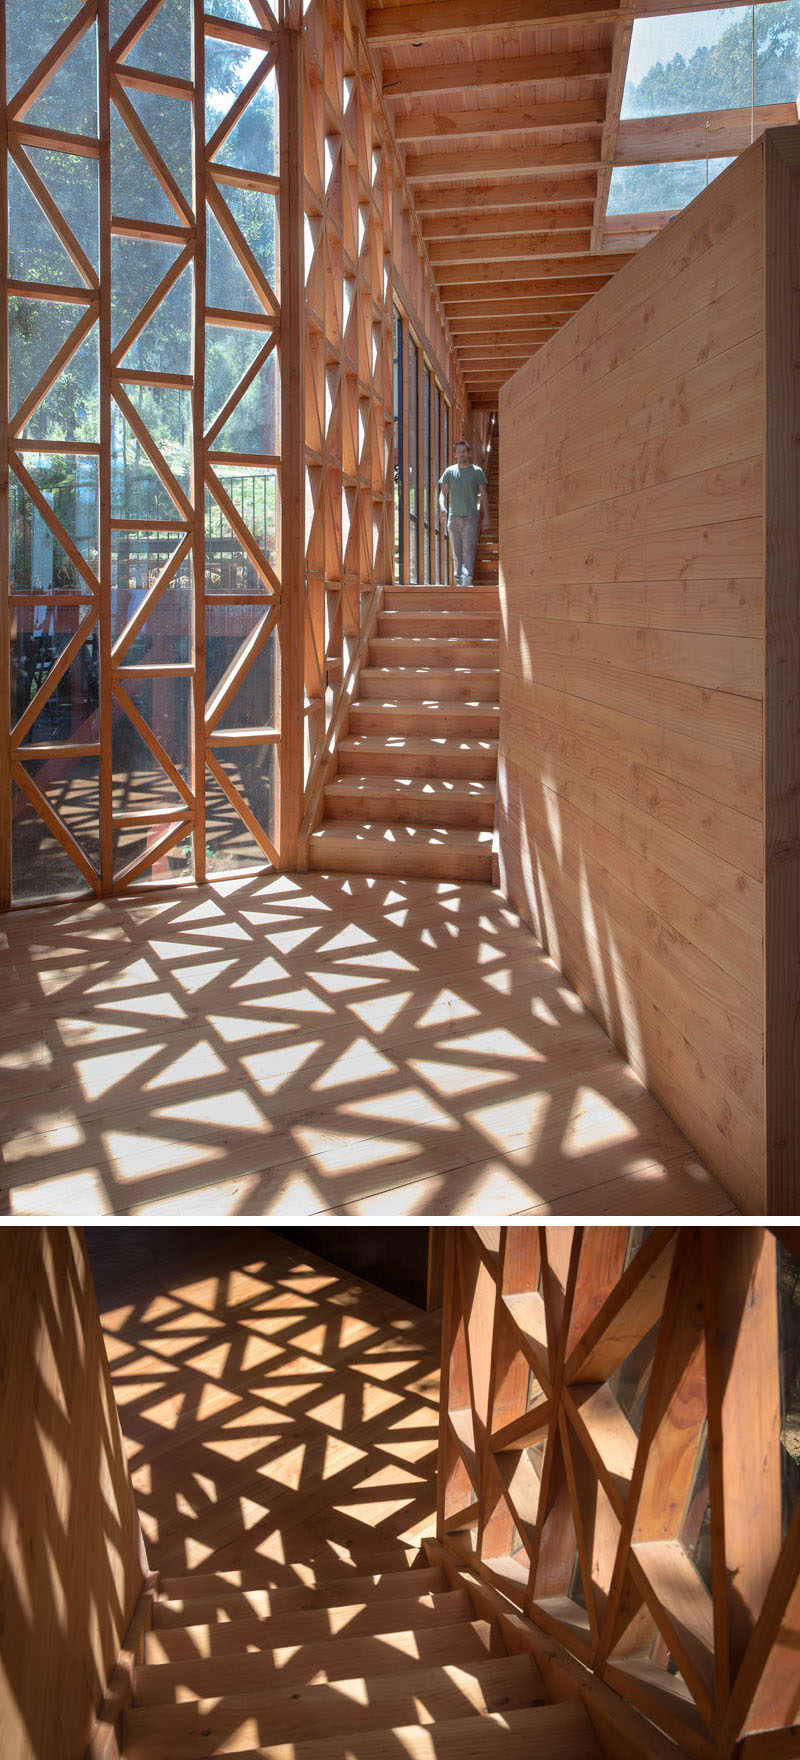 The windows next to these steps provide an interesting pattern when the sun shines on them.